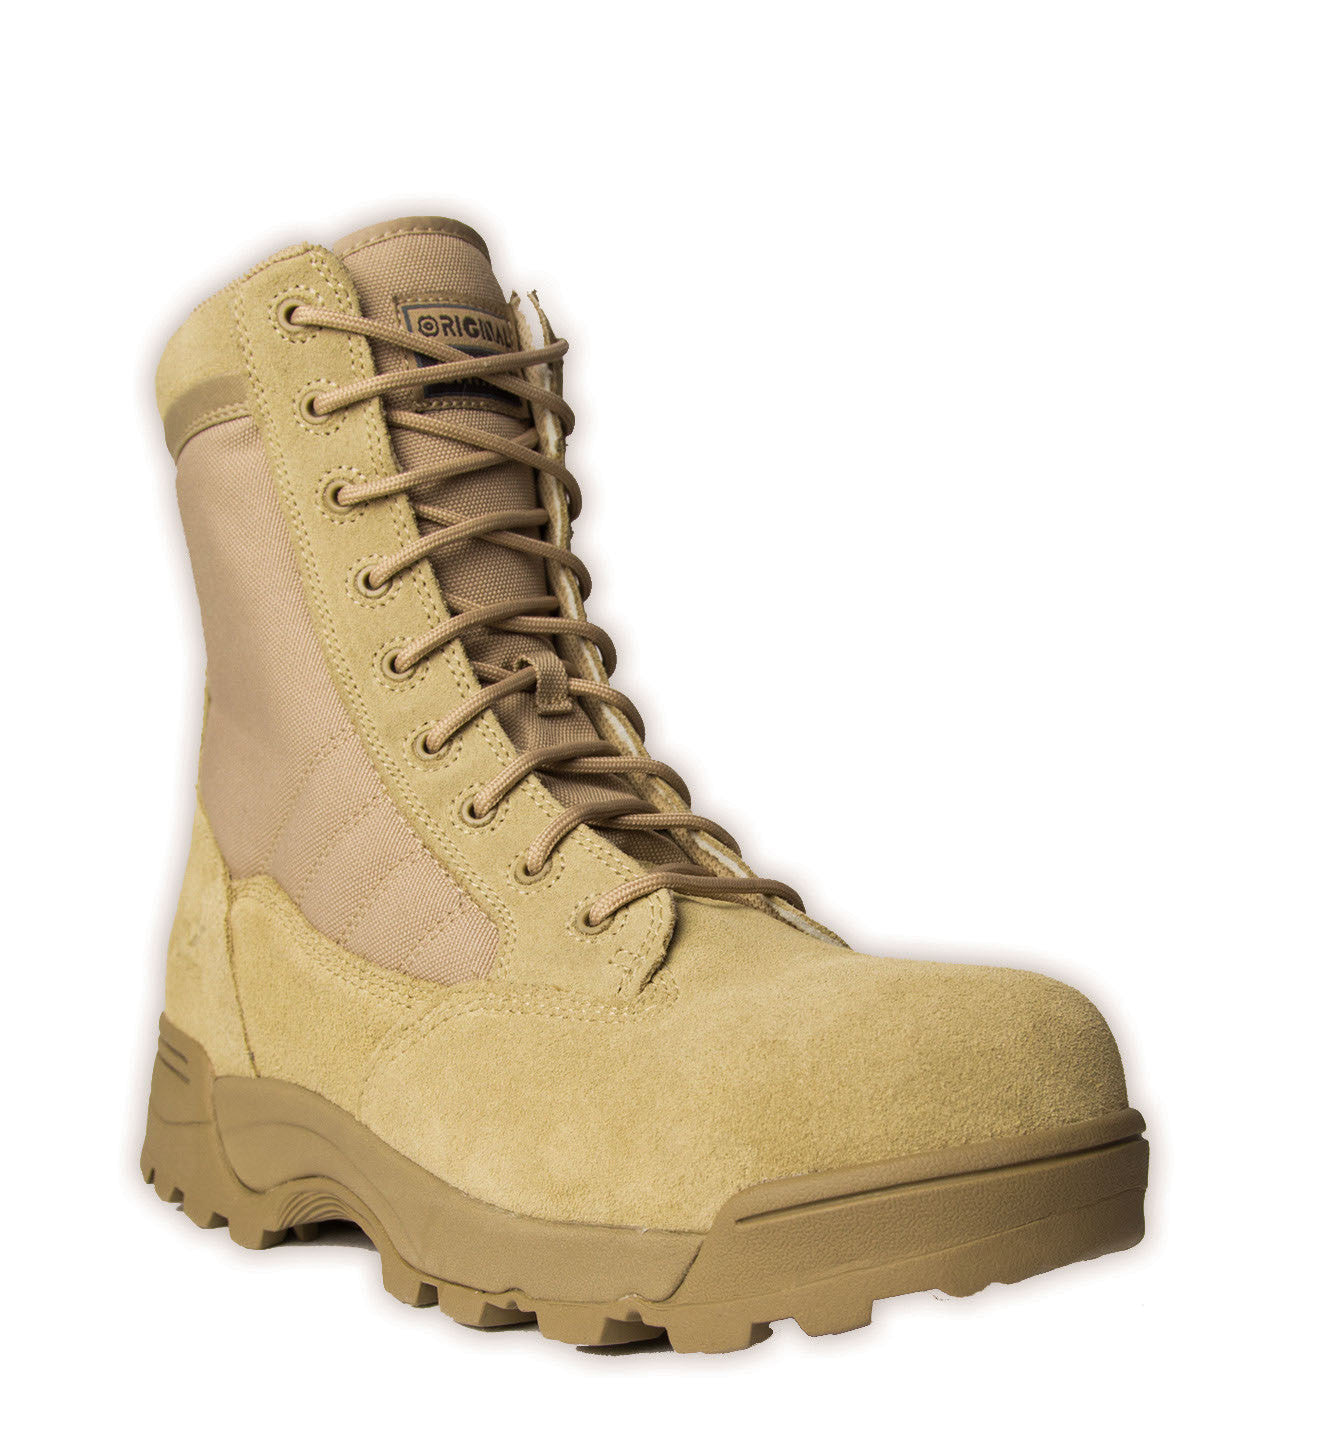 Original Swat Side-Zip Steel Toe Boots - Desert Tan